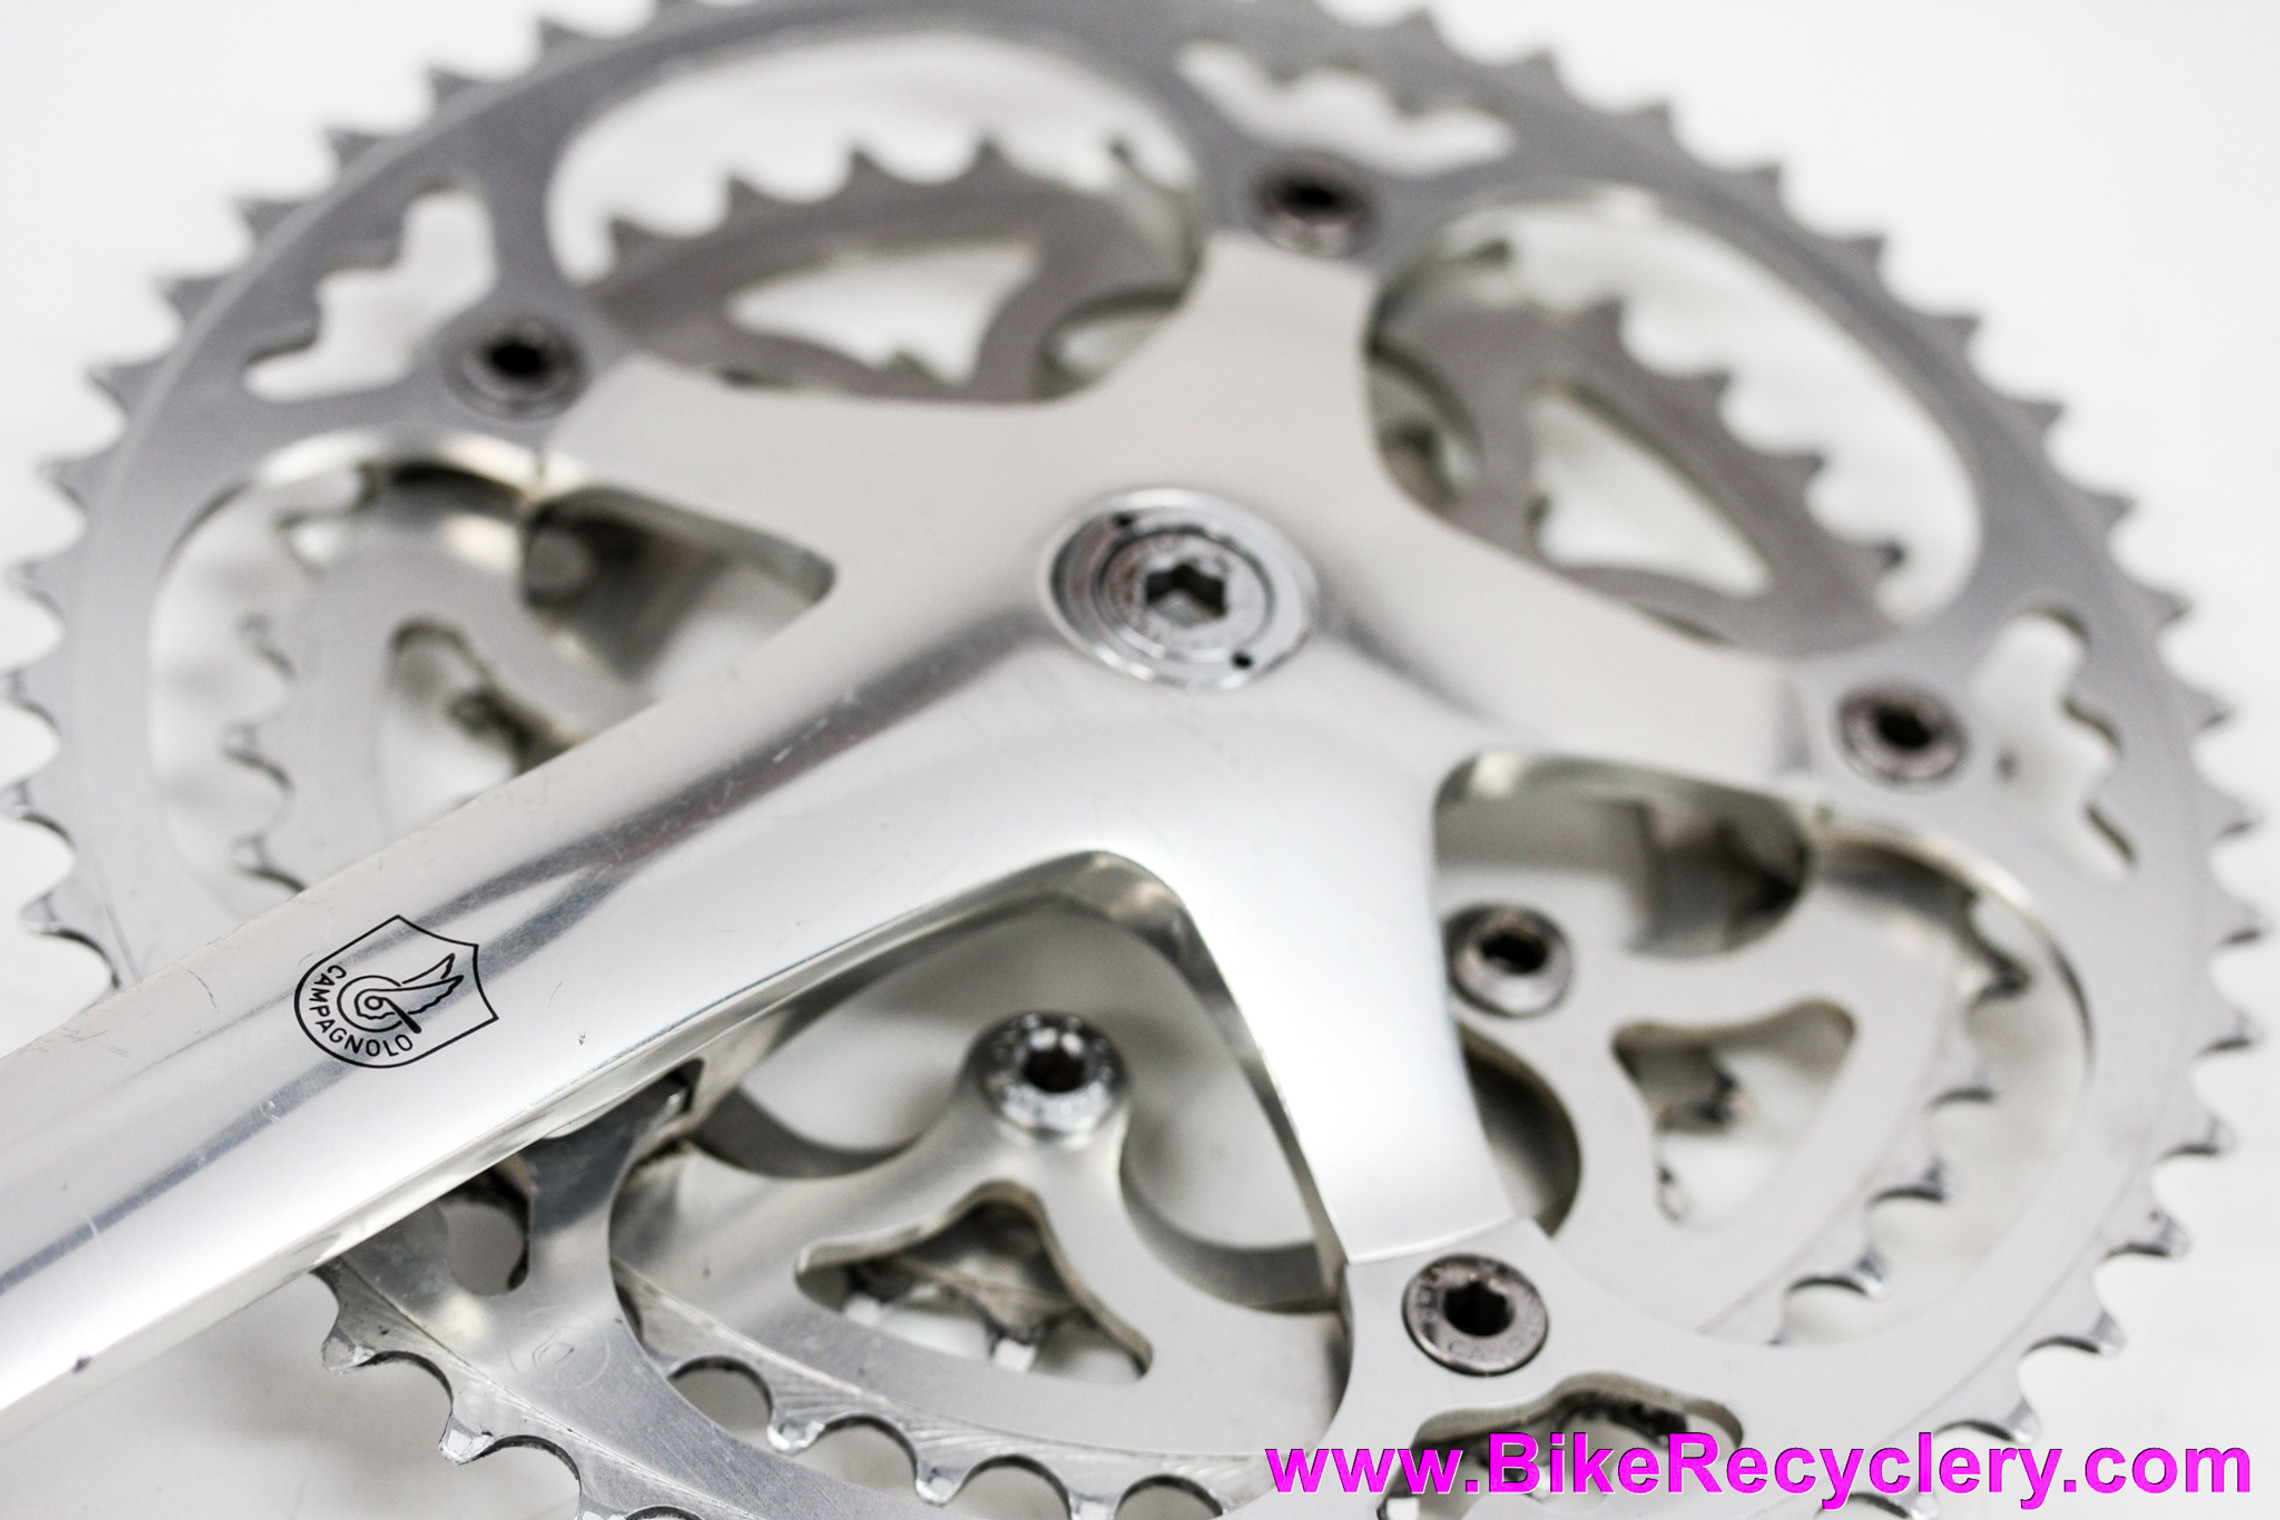 Campagnolo C-Record TRIPLE Crankset: 170mm - Willow Triplizer Chainrings 49/39/29t - 2nd Gen - Self-Extracting Dust Caps (Near Mint)